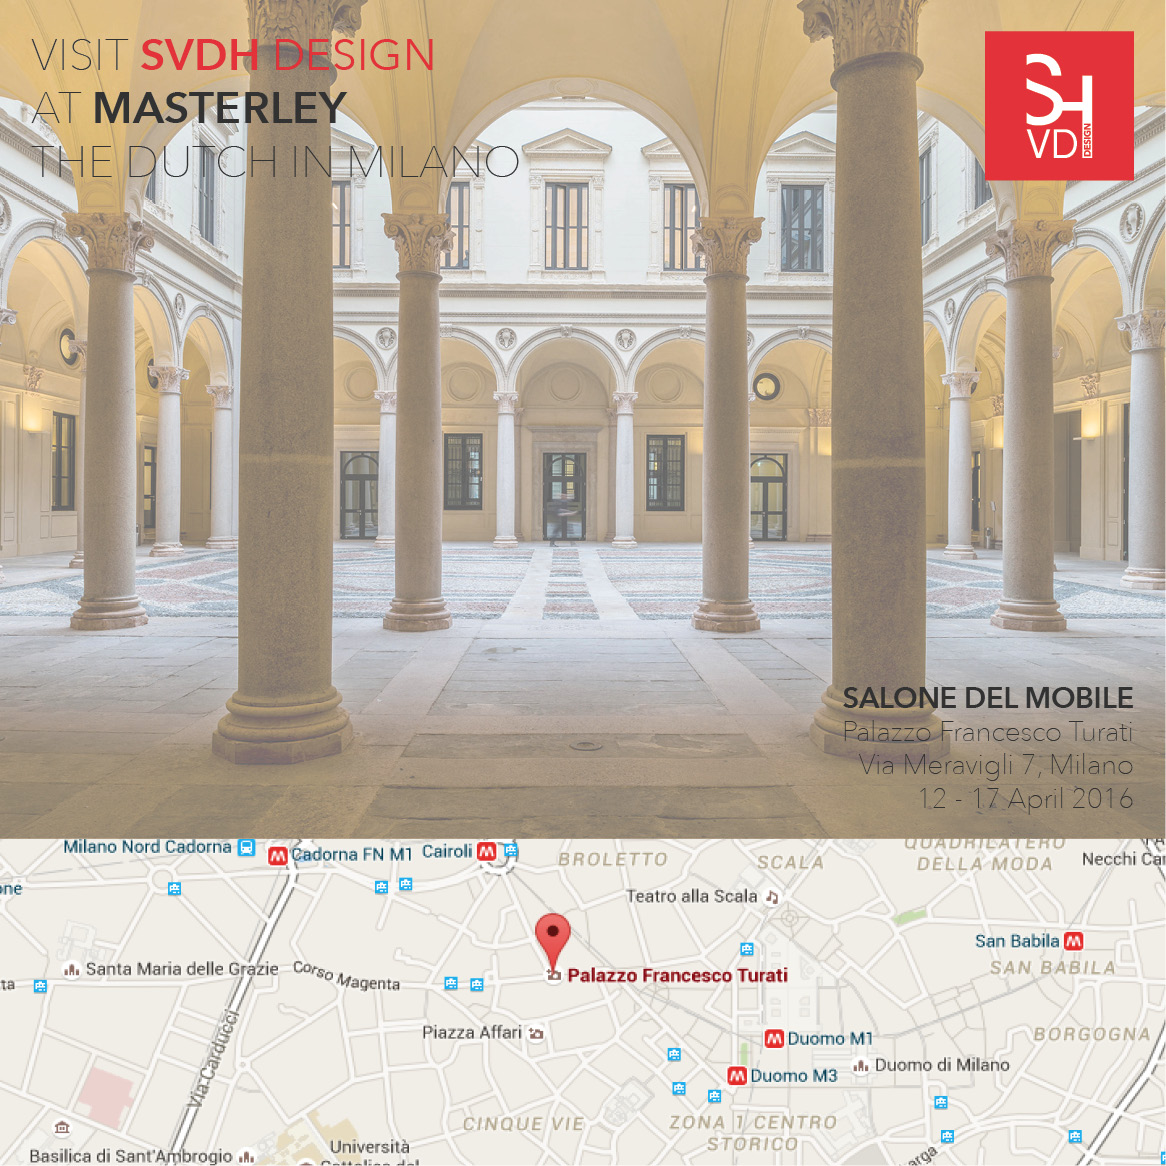 masterley the dutch in milano - salone del mobile svdh design